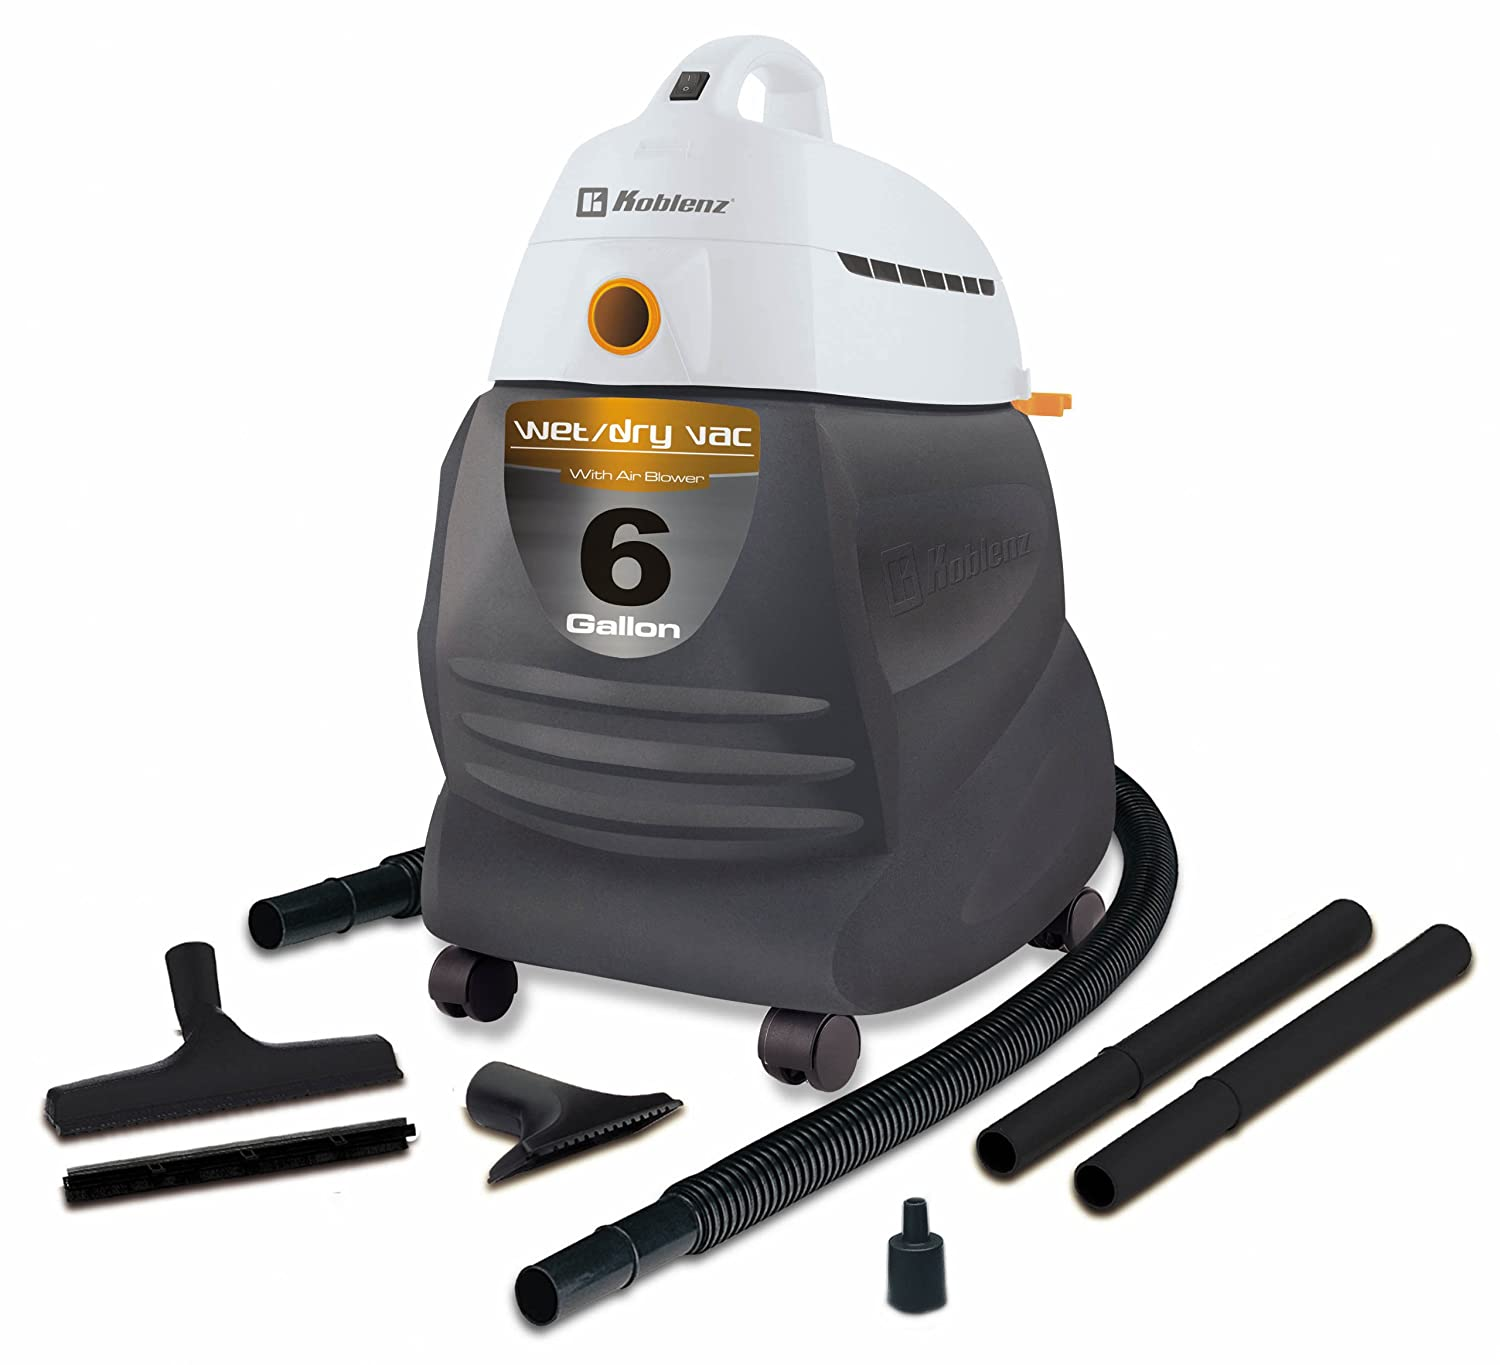 Koblenz WD-650 KG US 6-Gallon Wet/Dry Vacuum - Corded